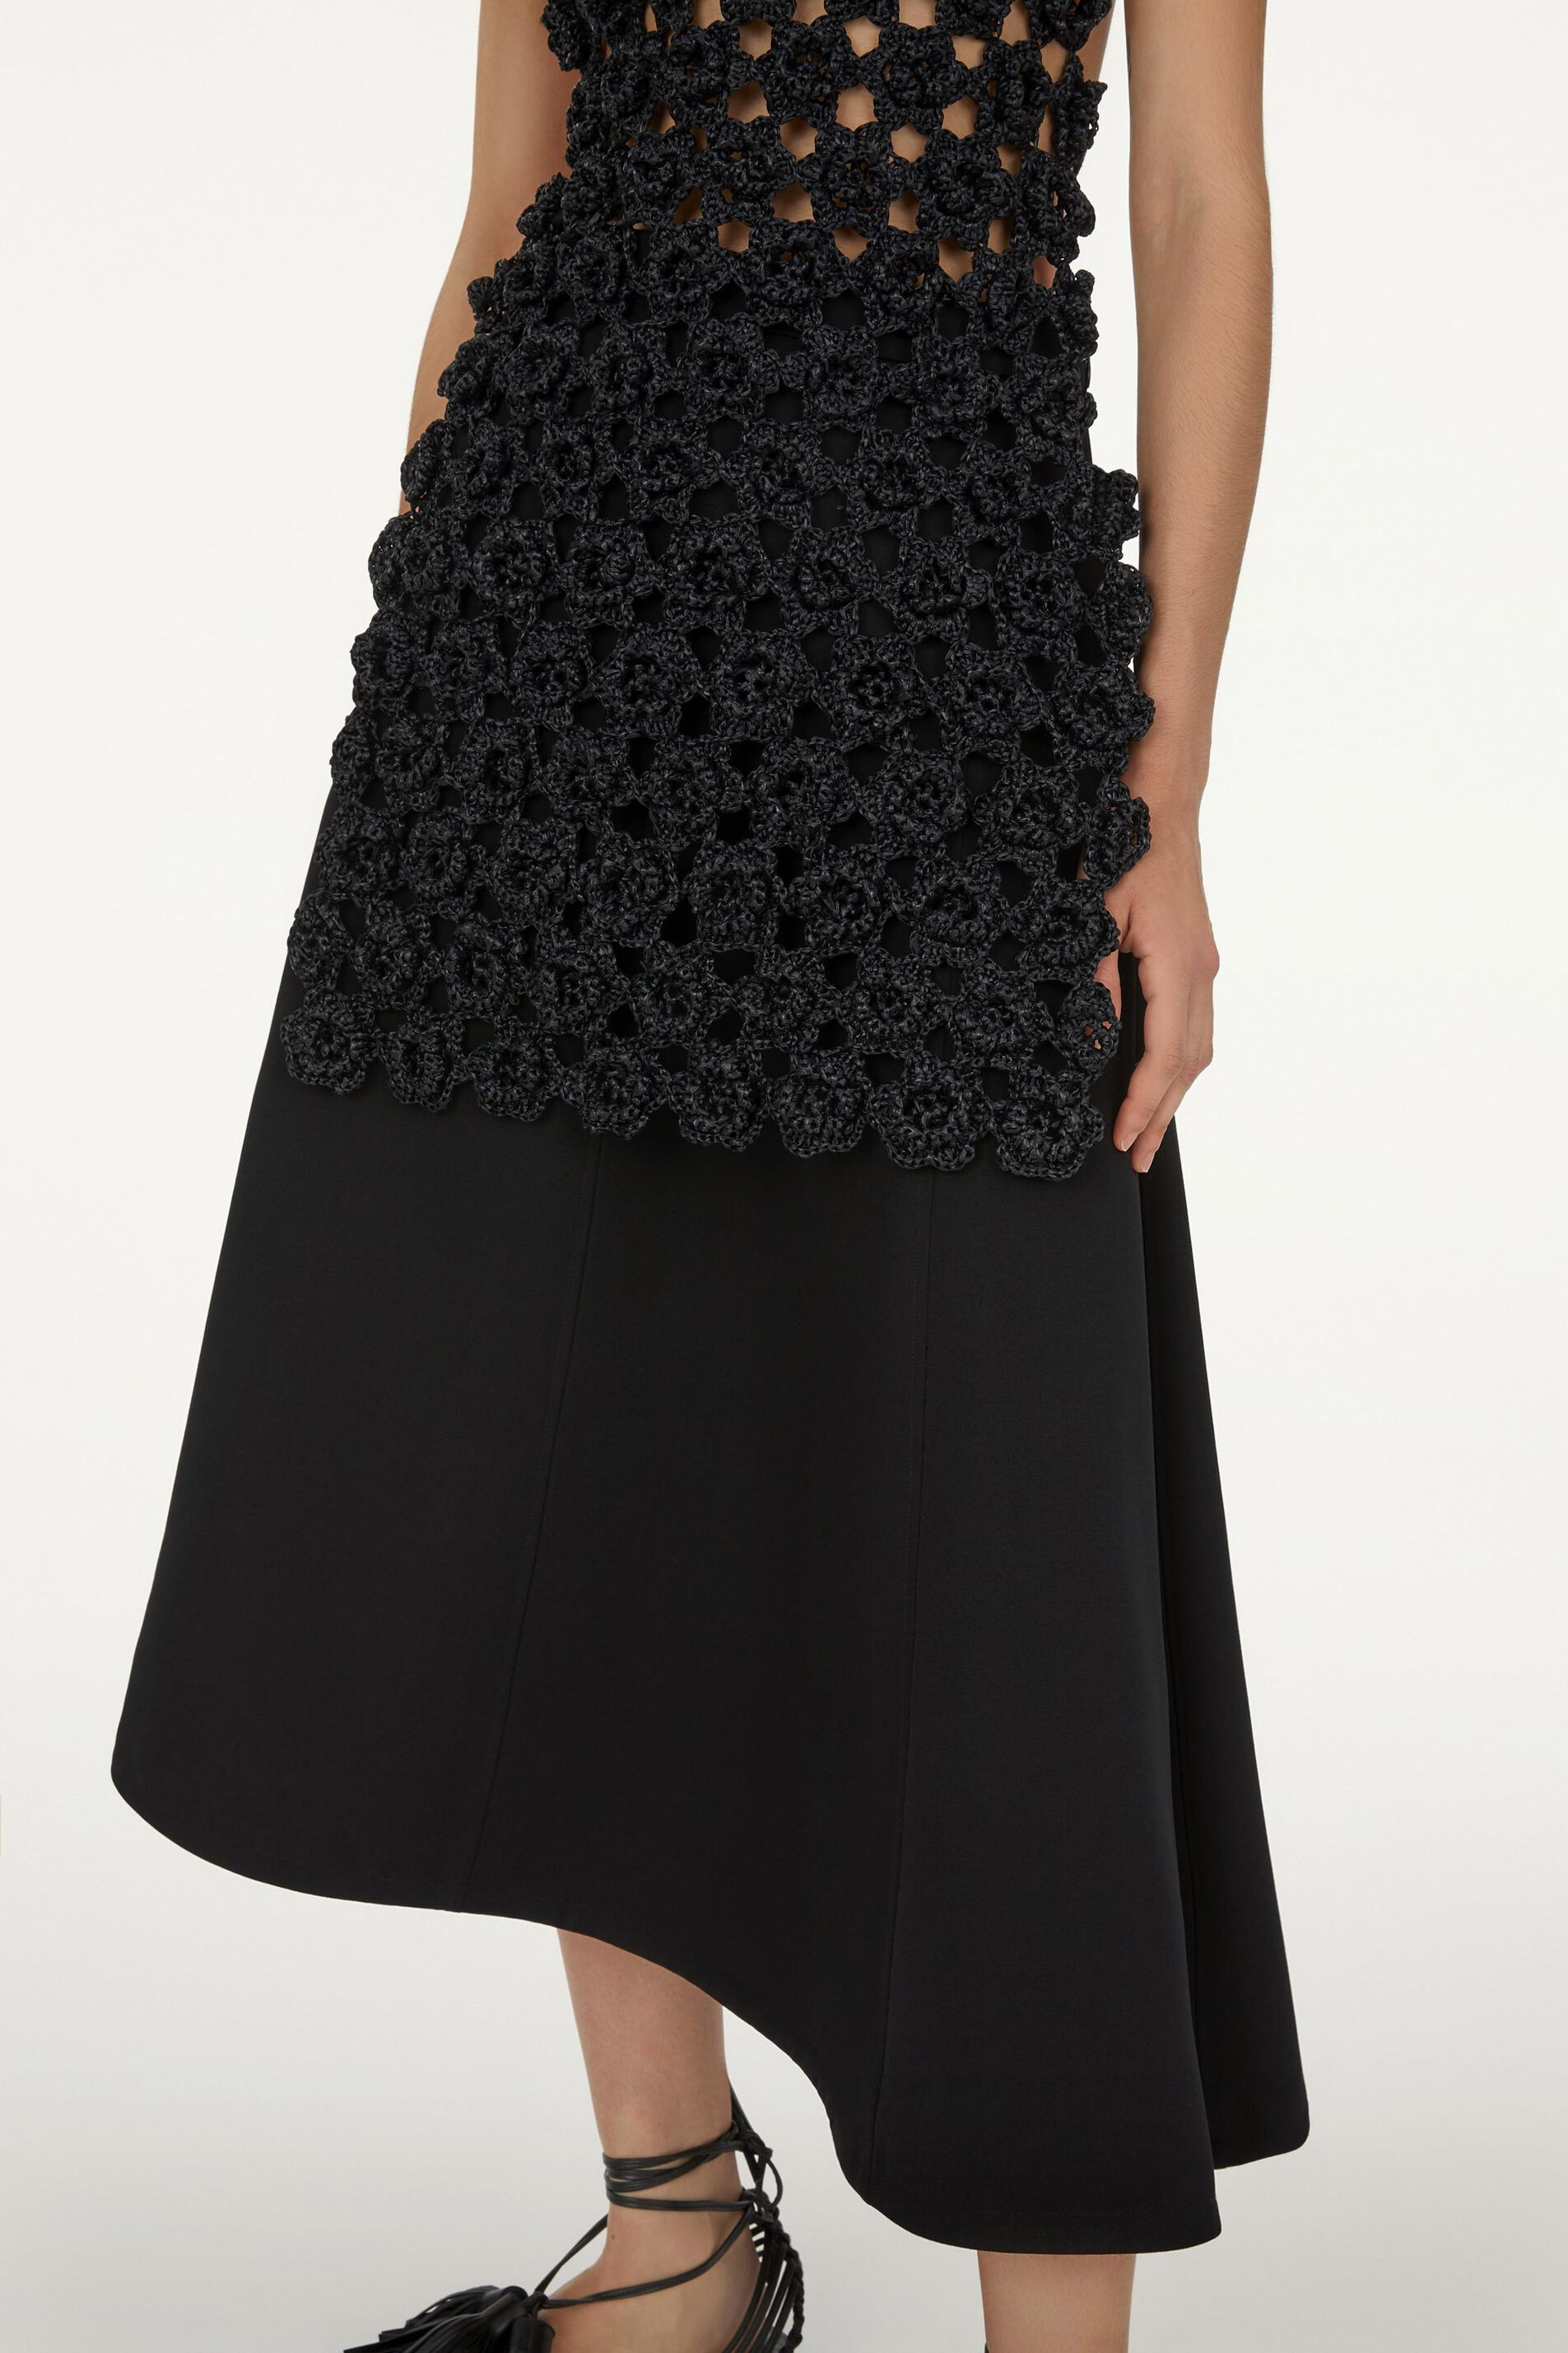 Asymmetrical Skirt, black, large